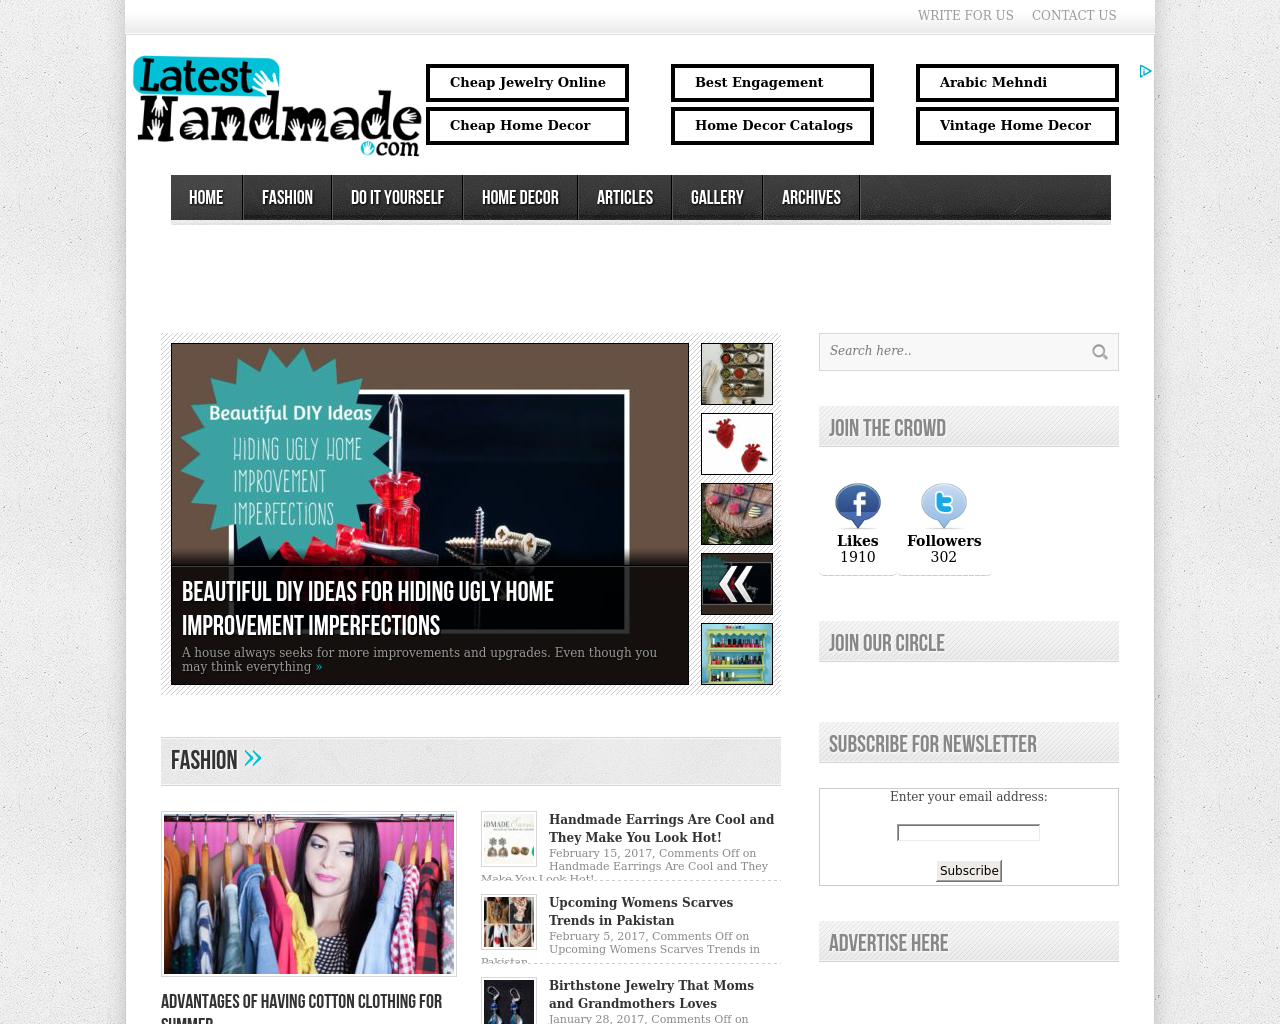 Latest-Handmade-Advertising-Reviews-Pricing